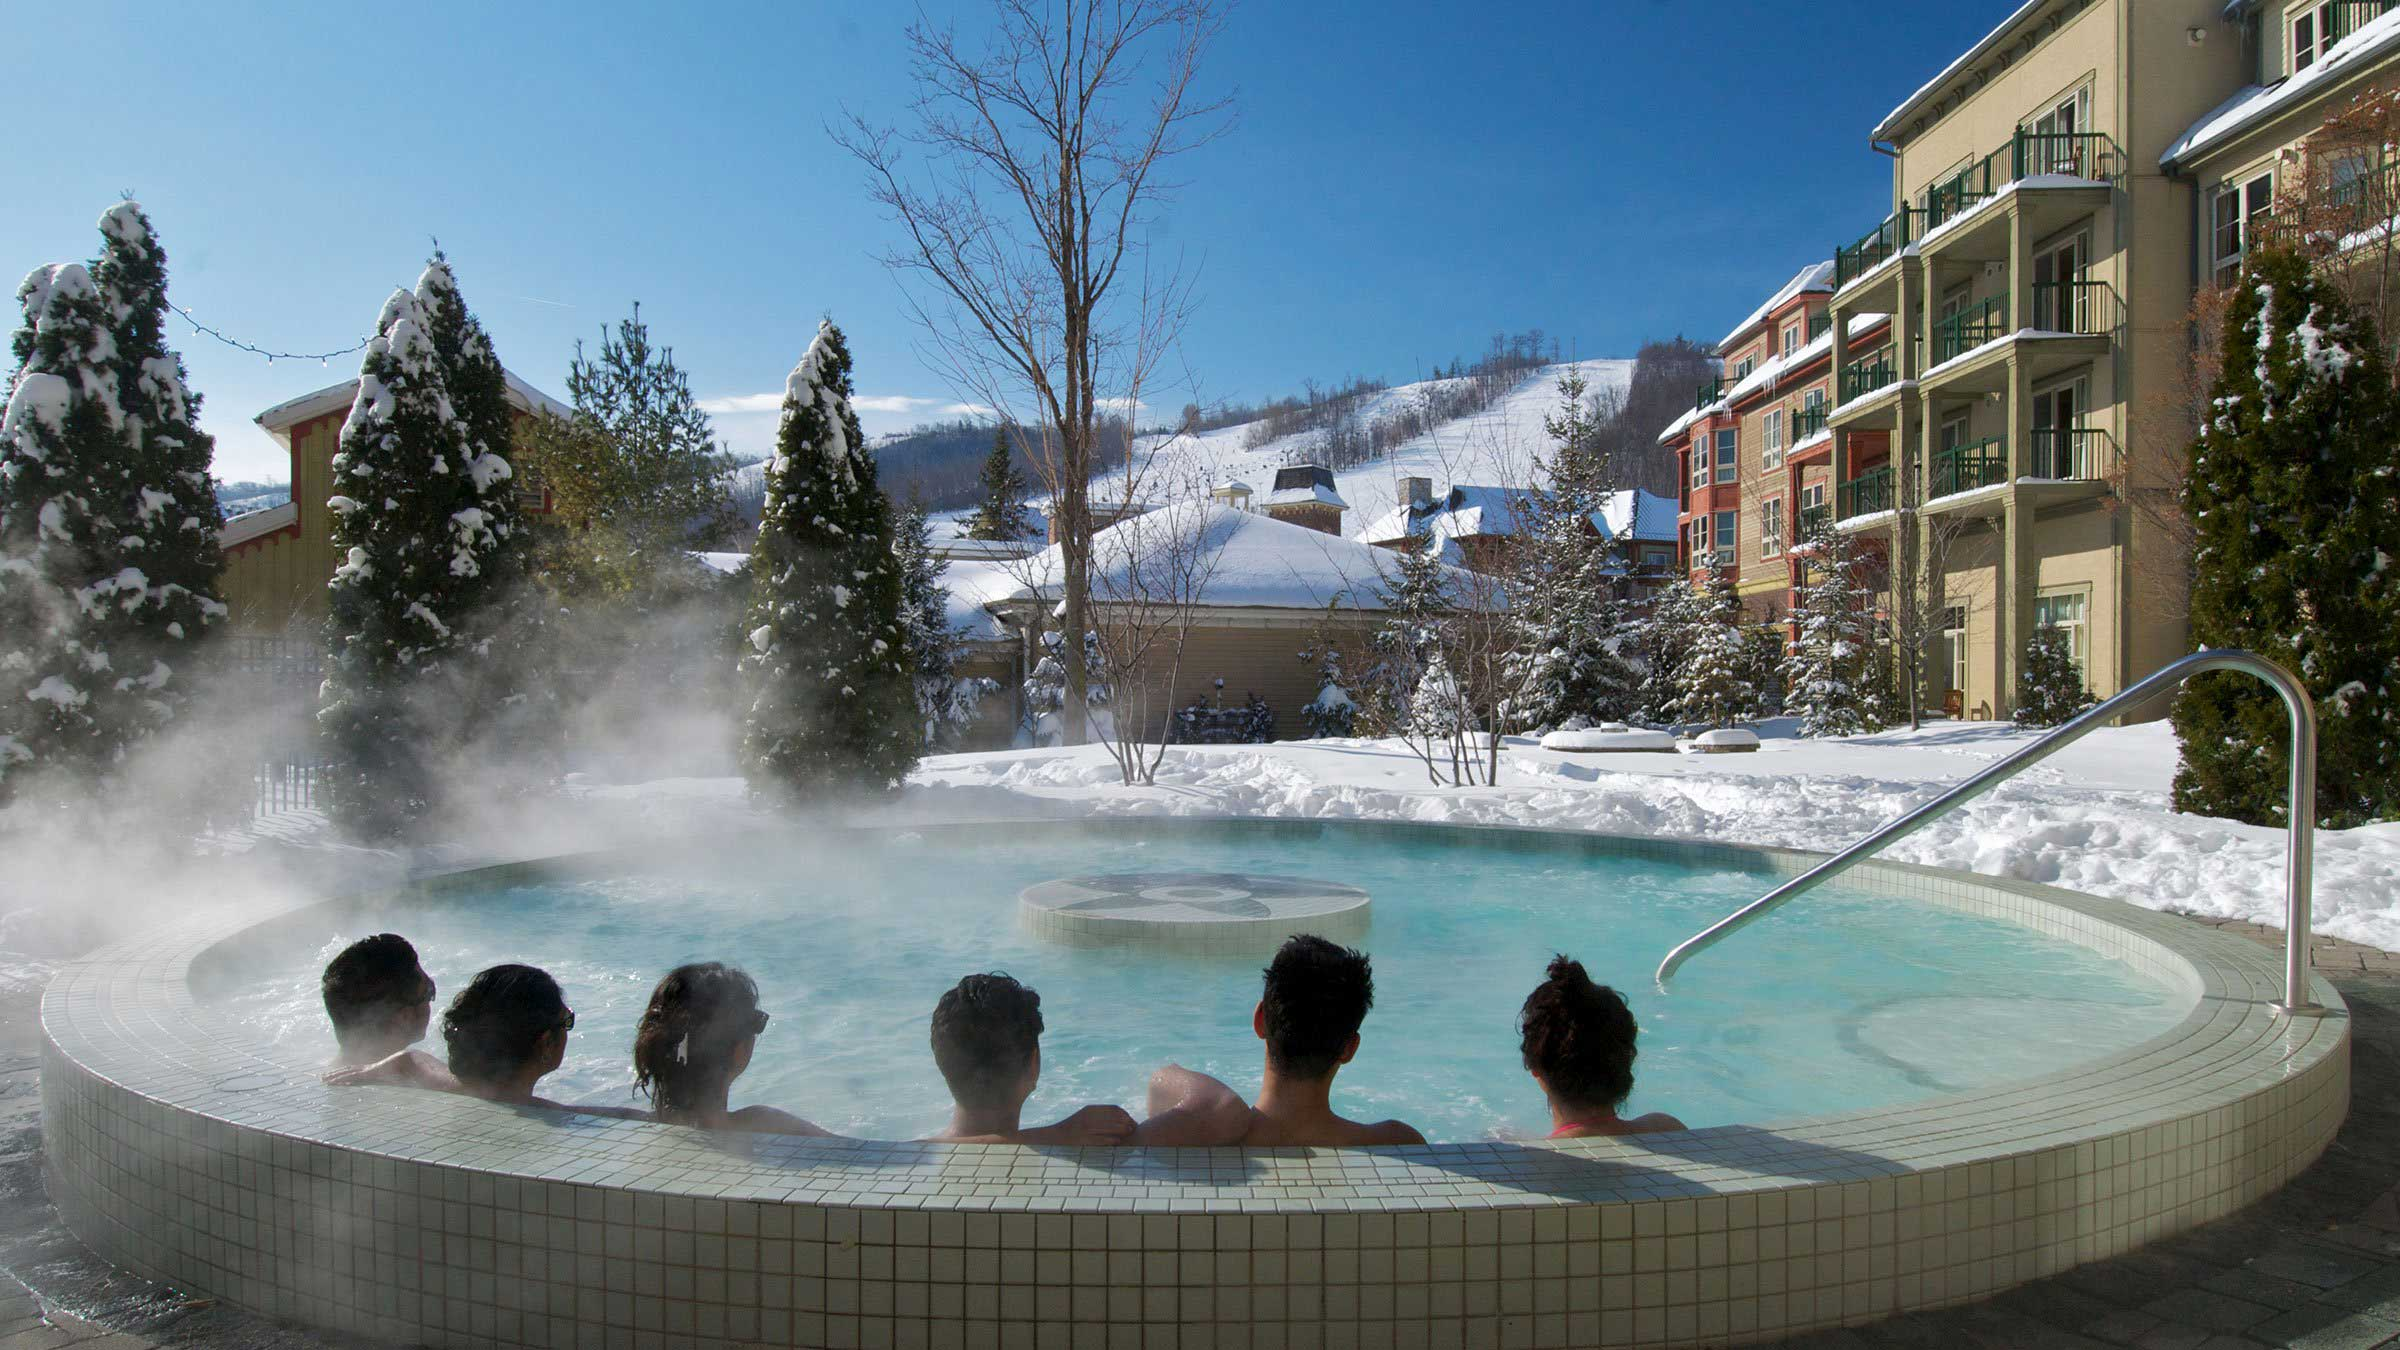 Hot Tub Party Ideas For The Winter Trasolini Pools Ltd